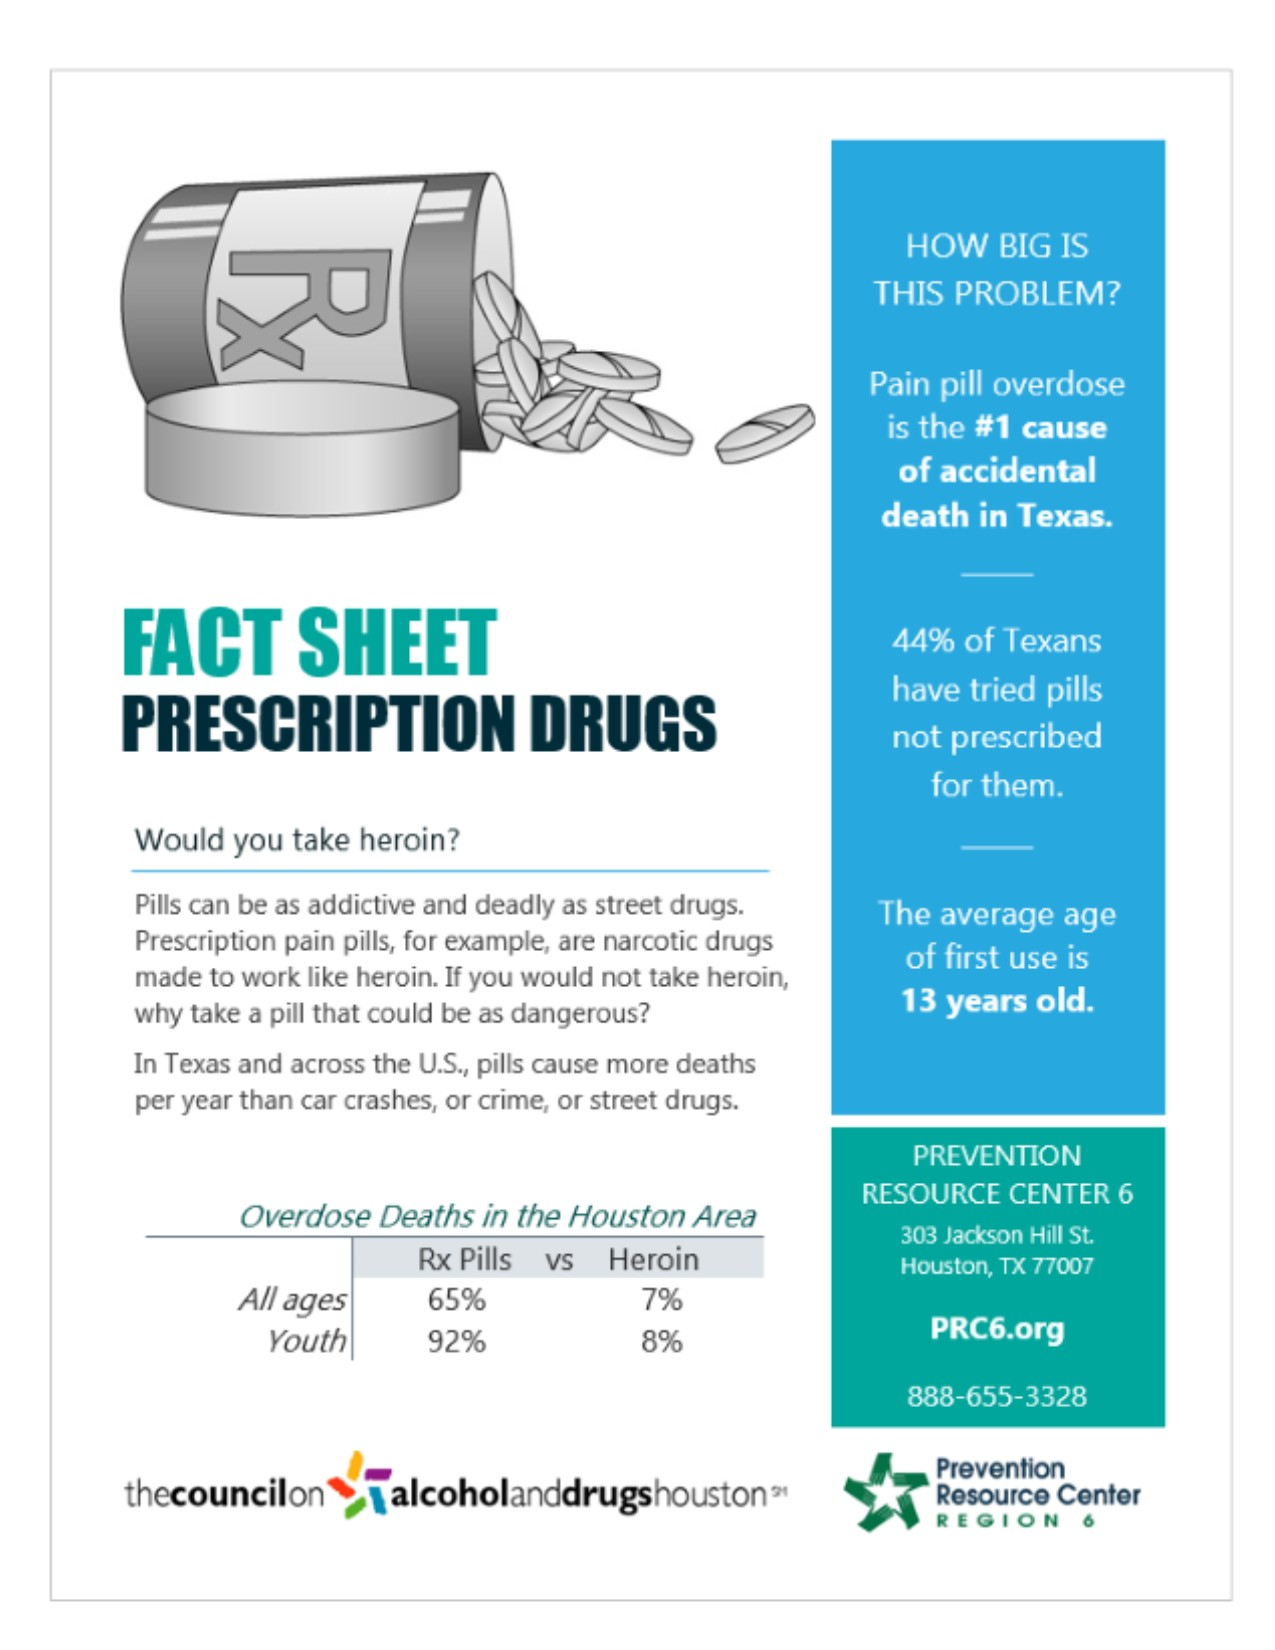 FactSheet_RxDrugs_20141021